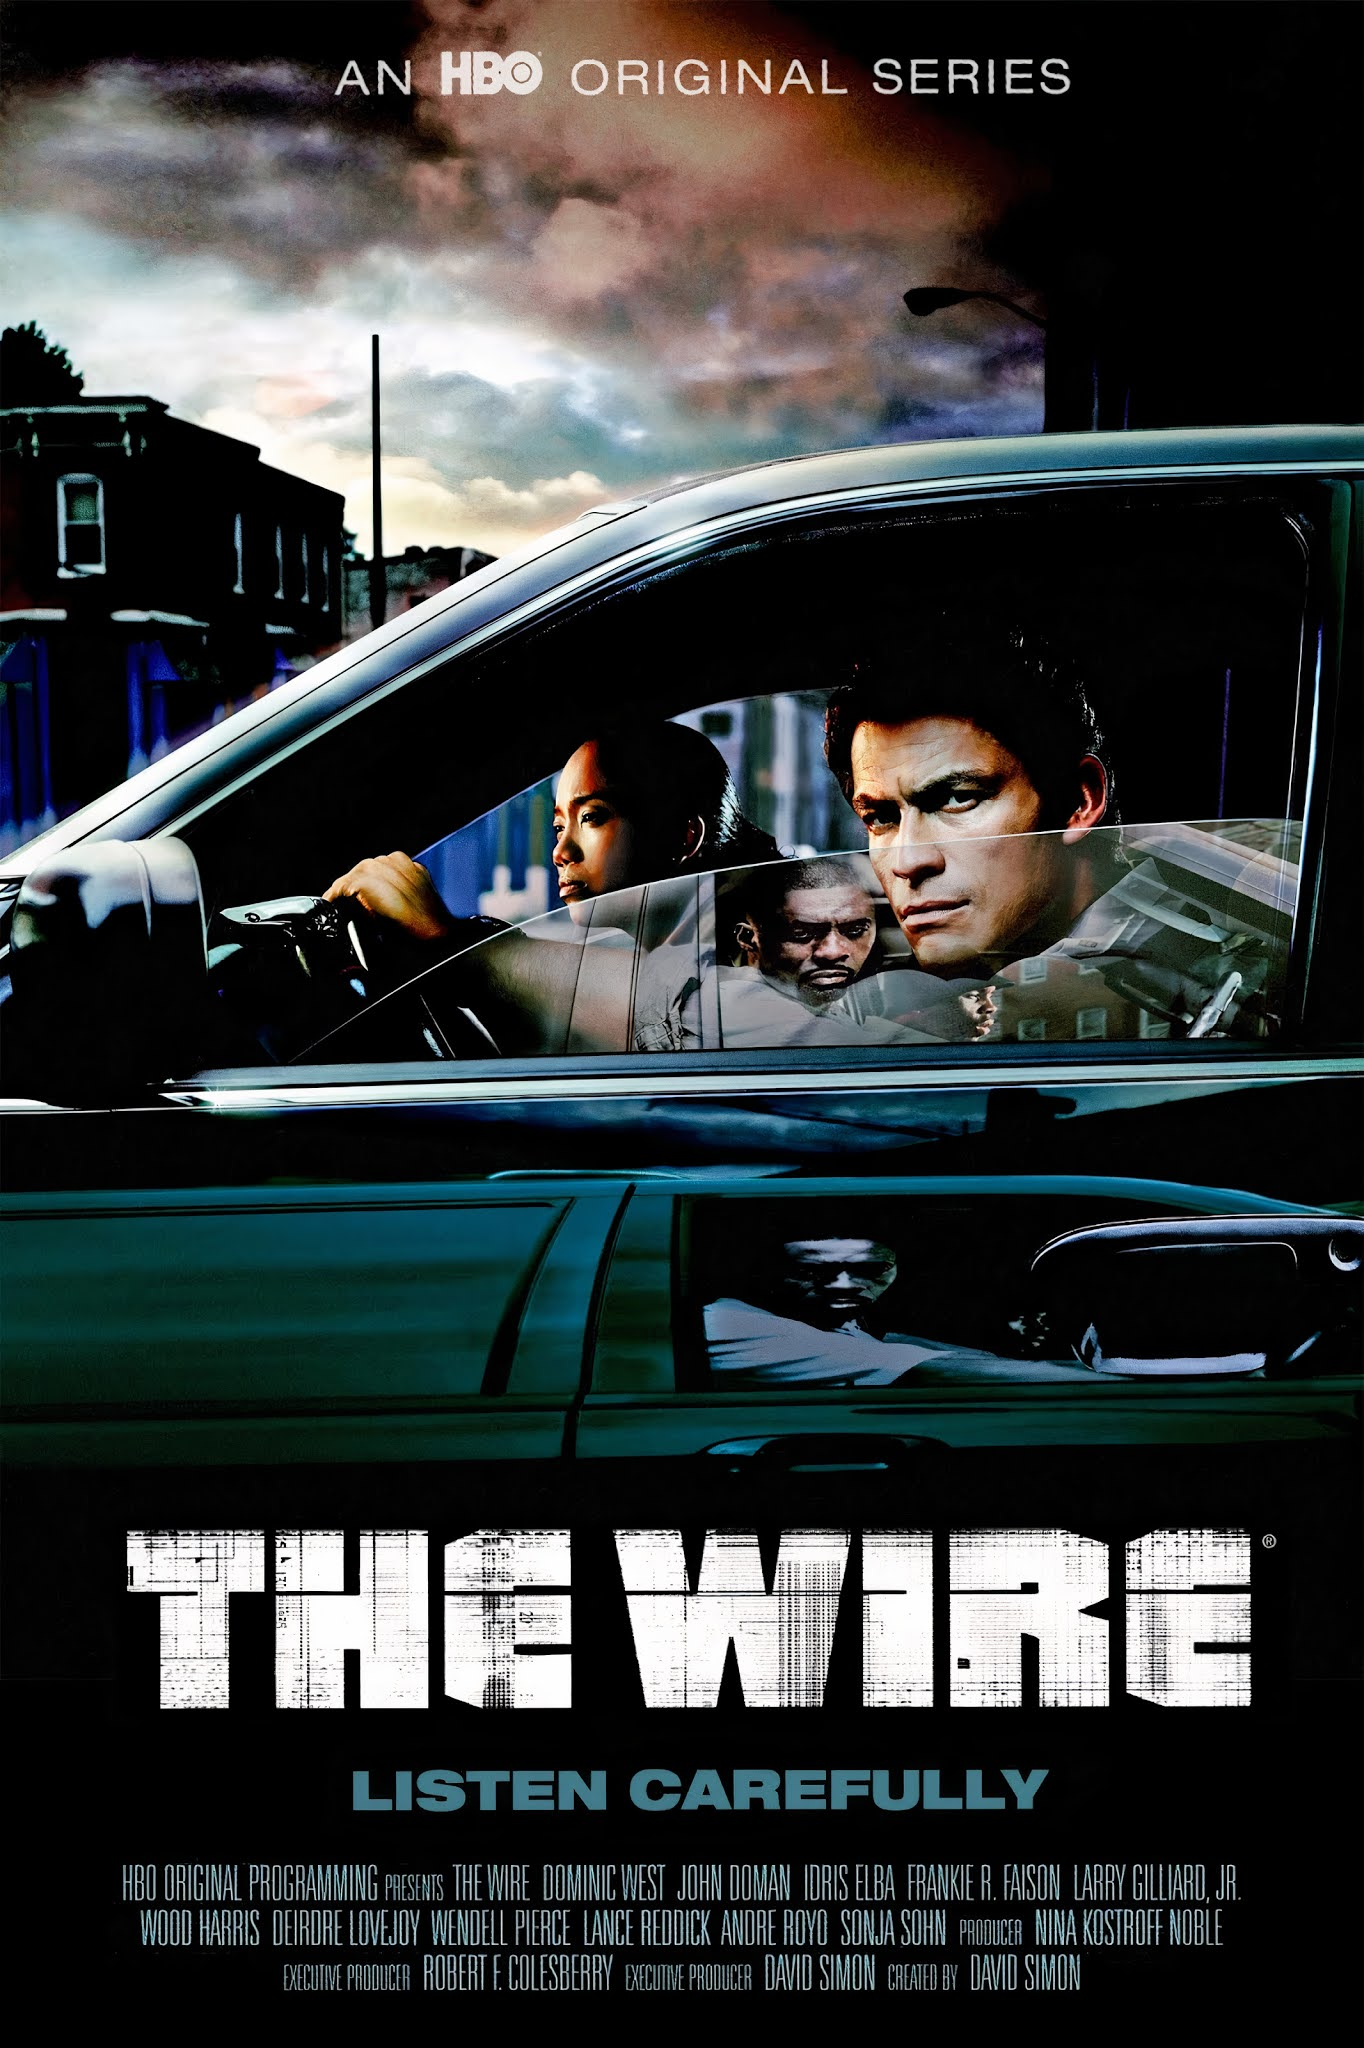 descargar the wire en hd serie completa latino